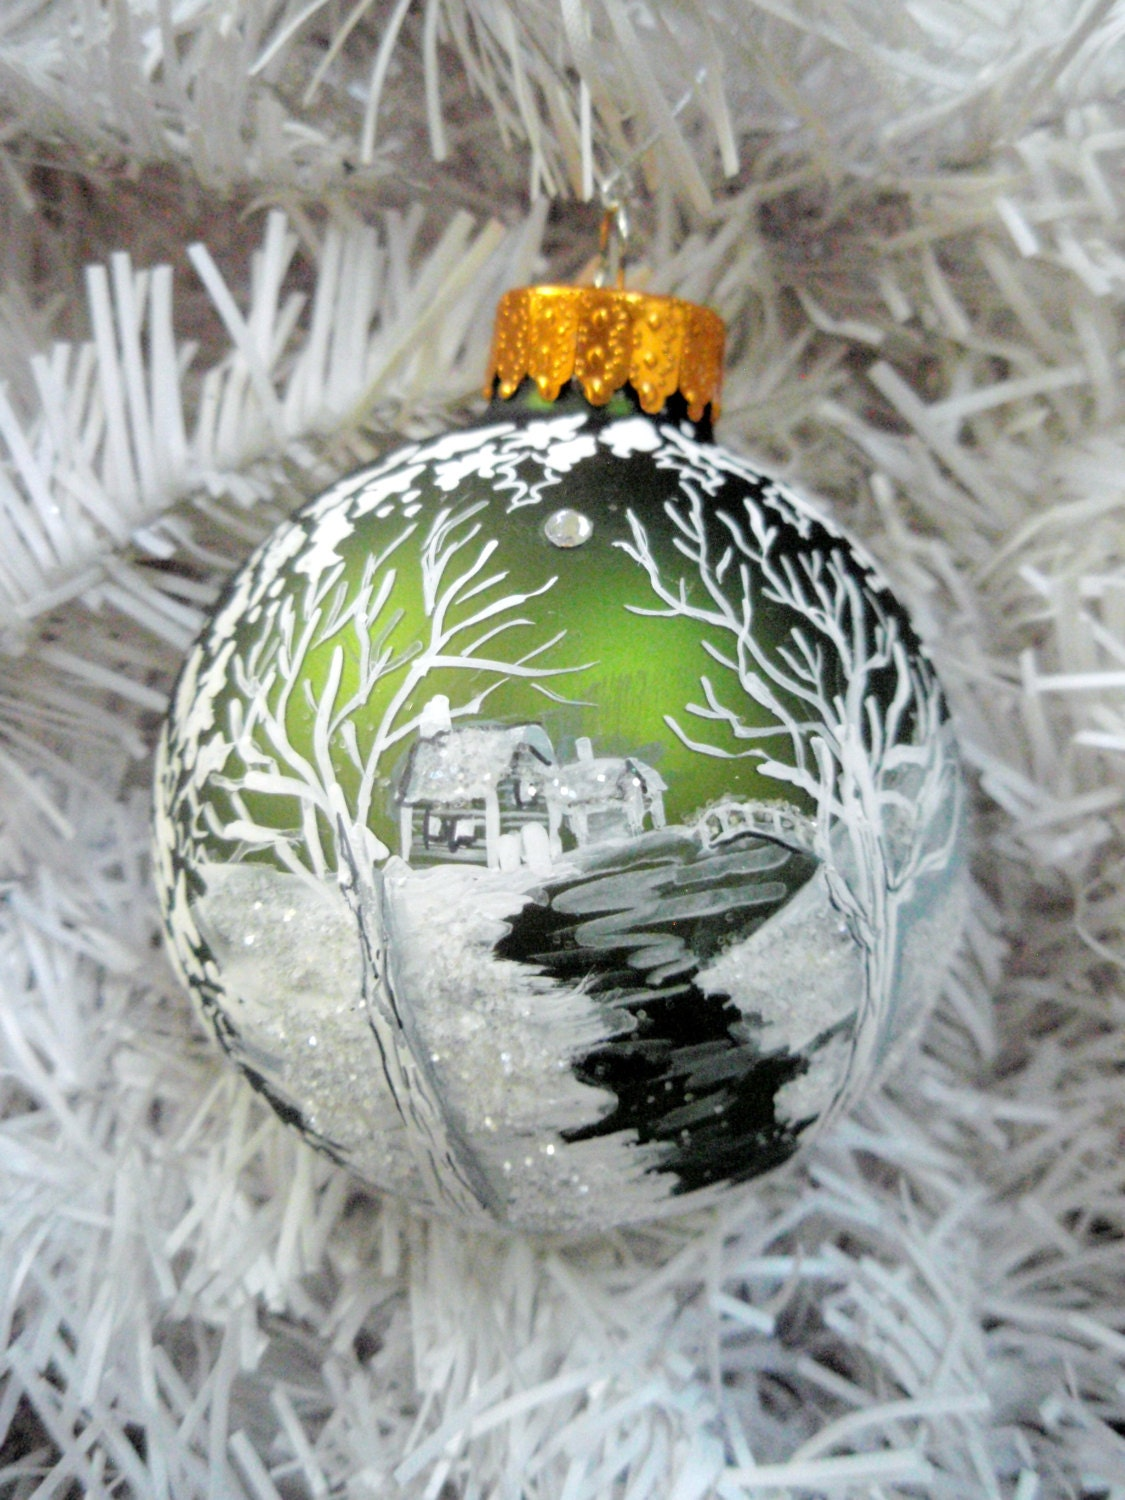 Personalized Painted Christmas Ball- Meandering Creek Snow Cabin by River, White Winter Landscape Handpainted Moss Green Glass Ball Ornament - PickleLilyDesign